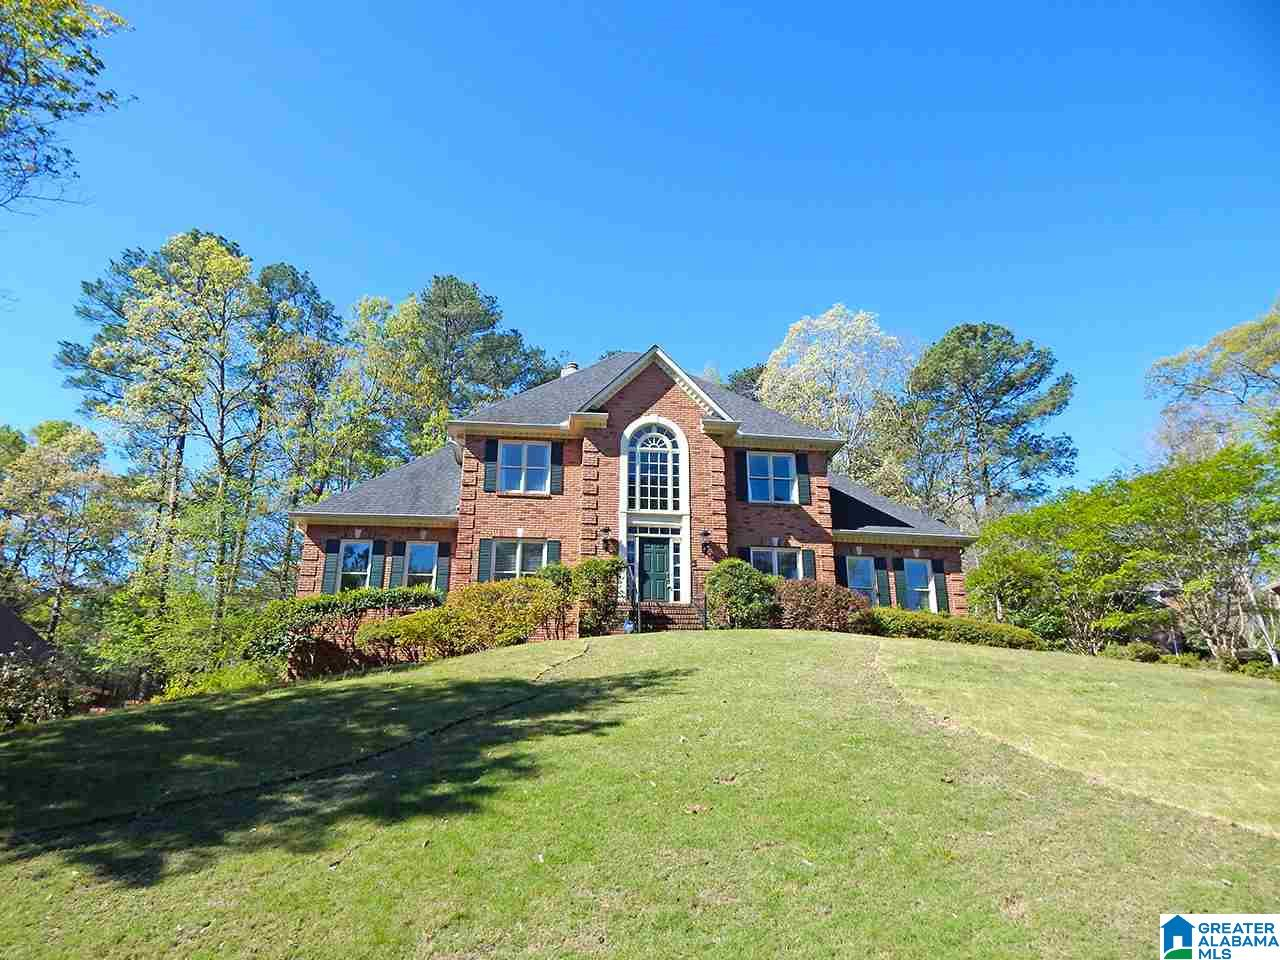 4030 WATER WILLOW LN, HOOVER, AL 35244